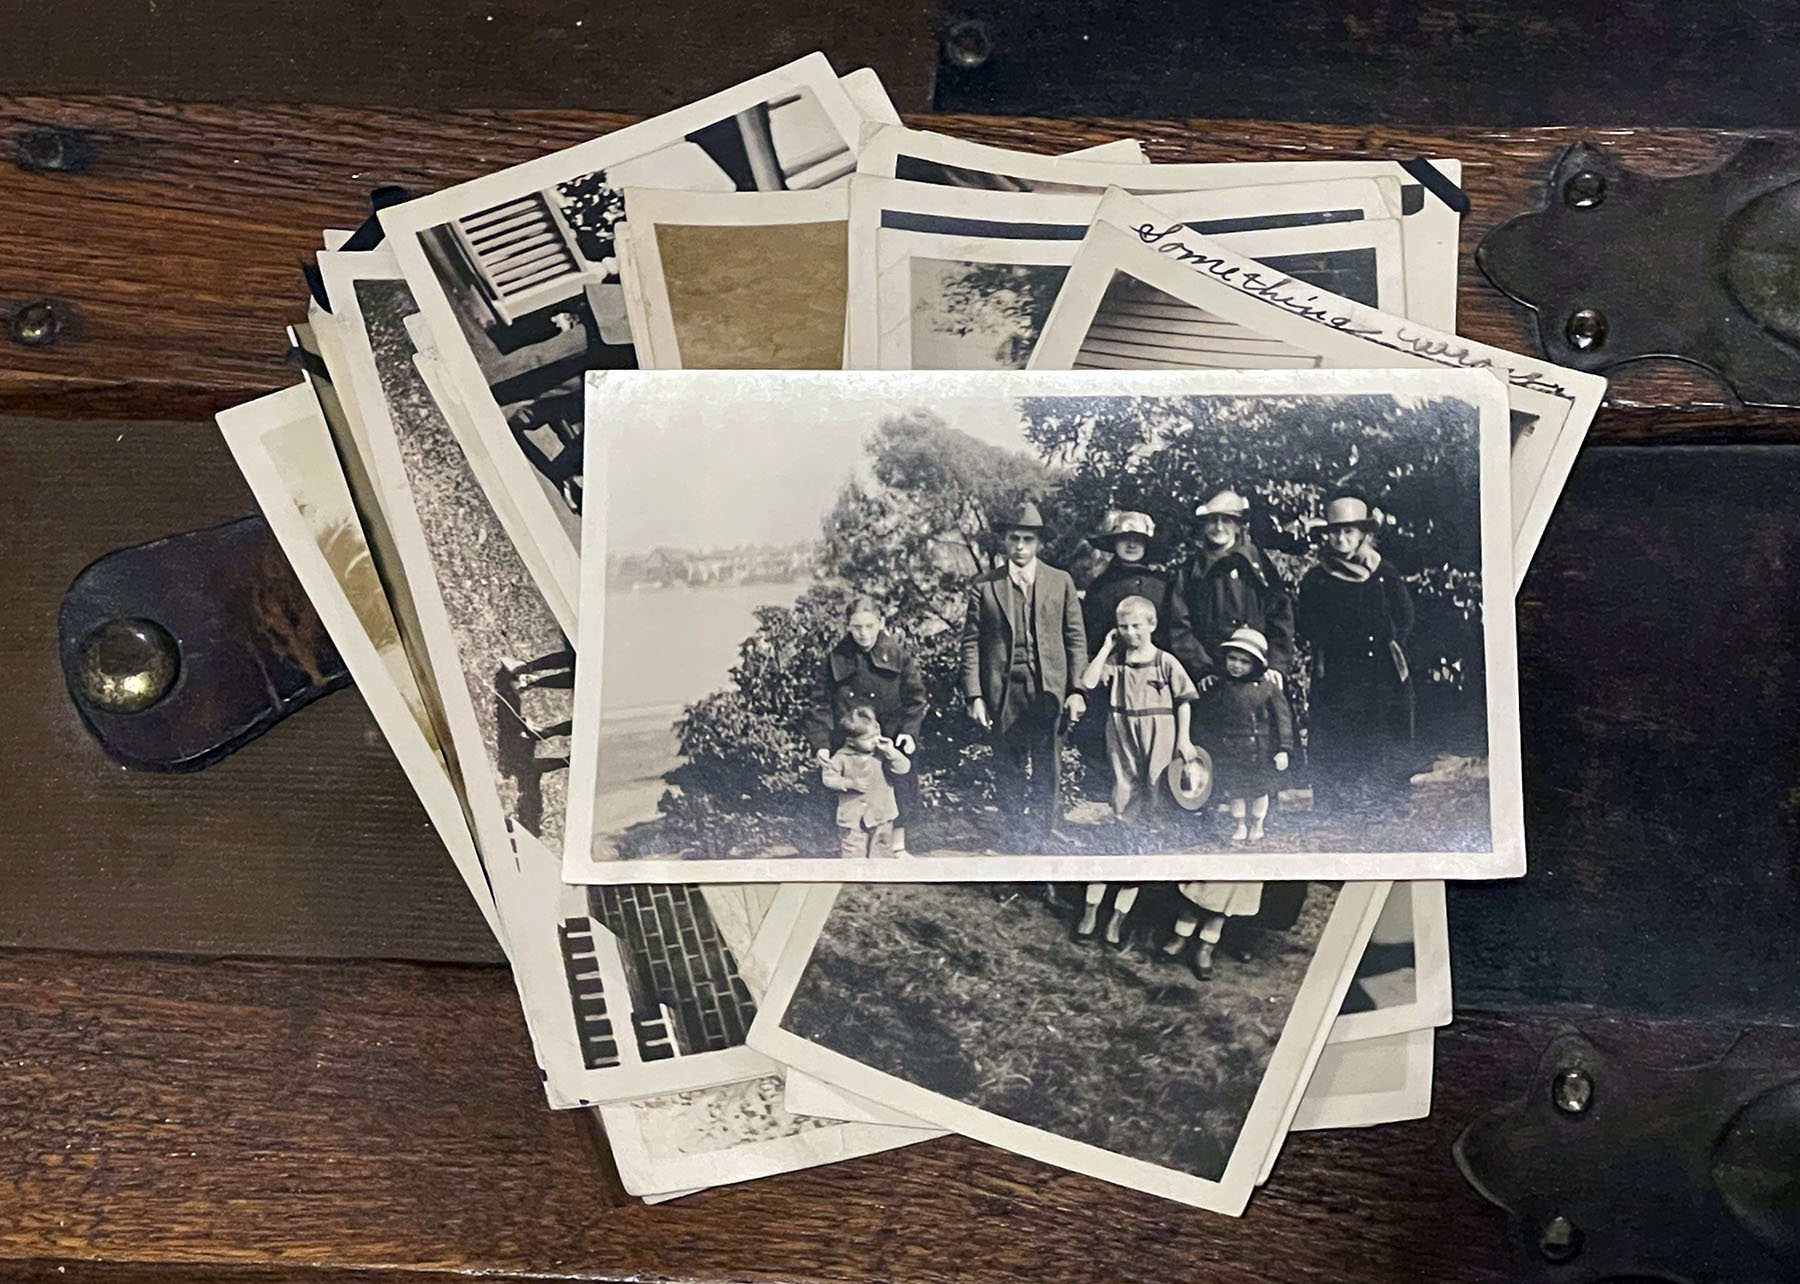 Curating Your Photo Collection